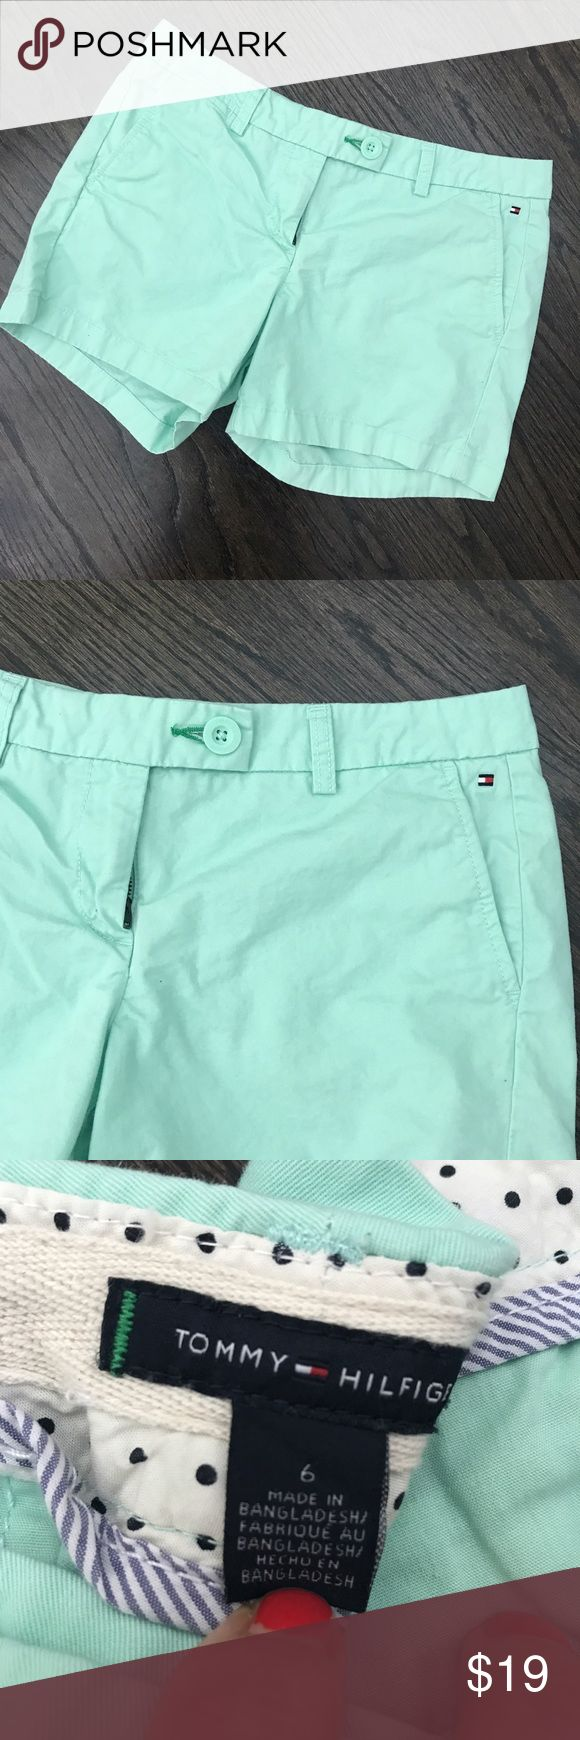 "Tommy Hilfiger Mint Green Shorts Tommy Hilfiger mint green shorts. 4.25"" inseam. Size 6. Tommy Hilfiger Shorts"